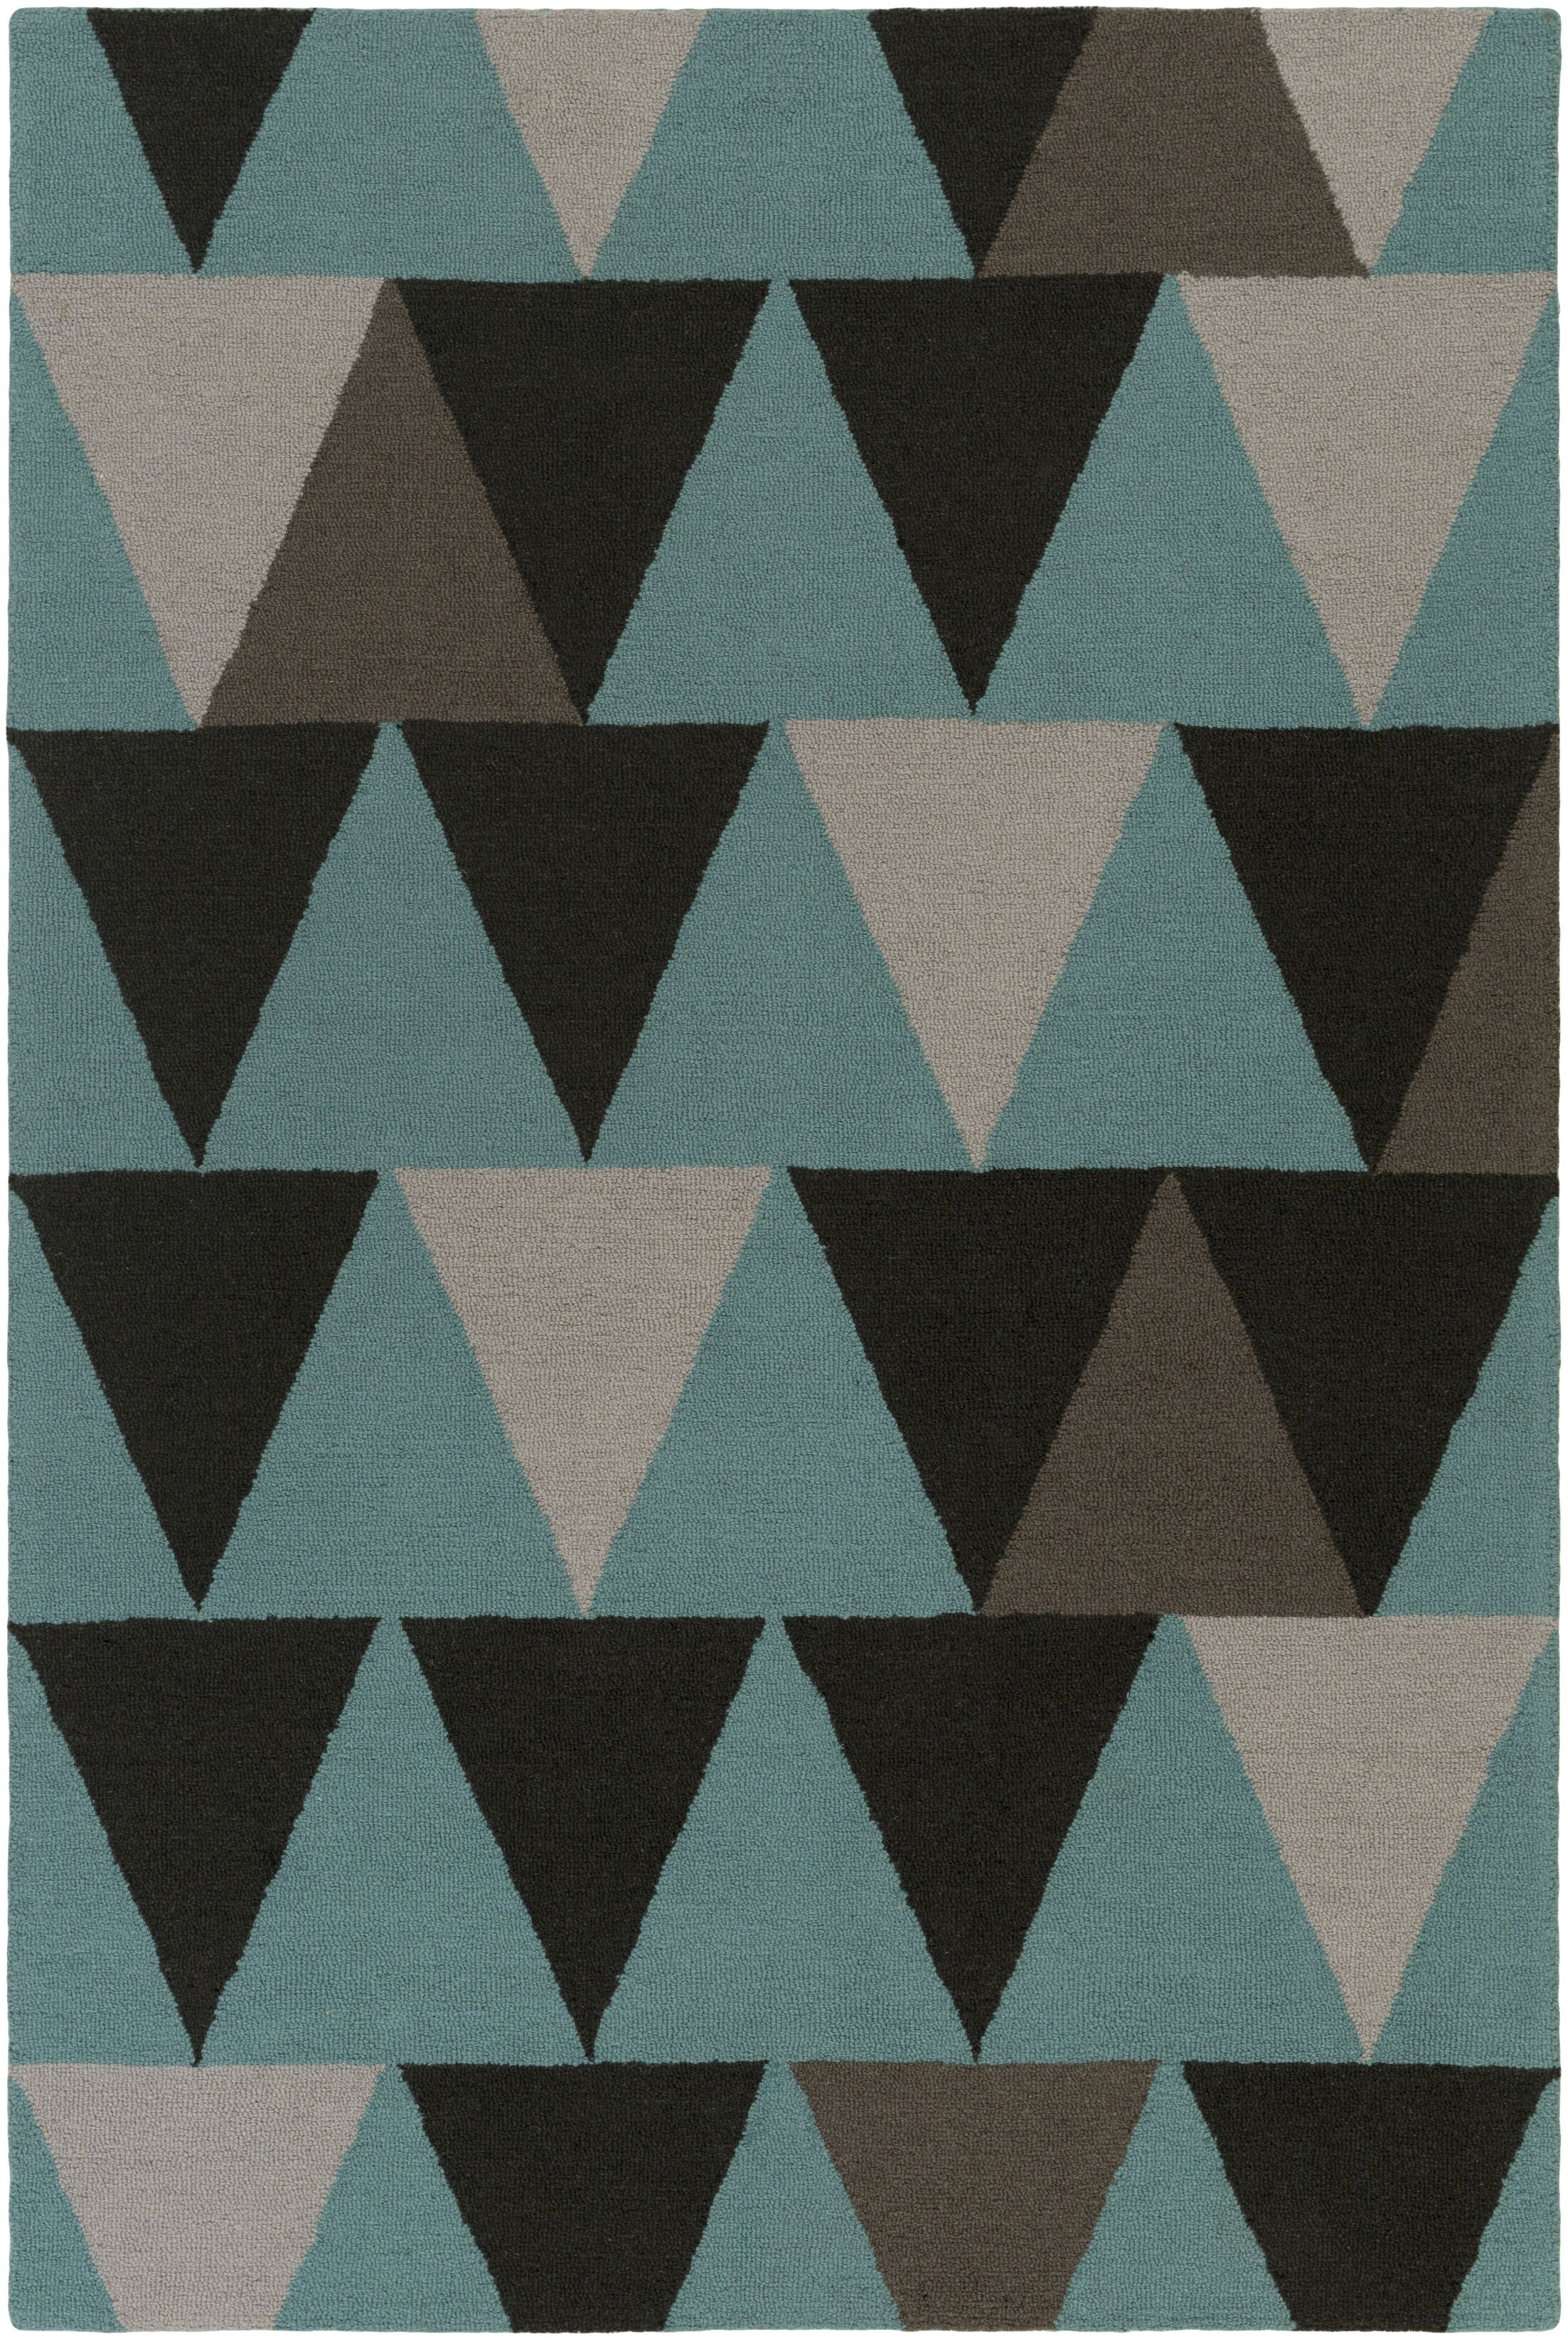 Younts Hand-Crafted Teal/Gray Area Rug Rug Size: Runner 2'3